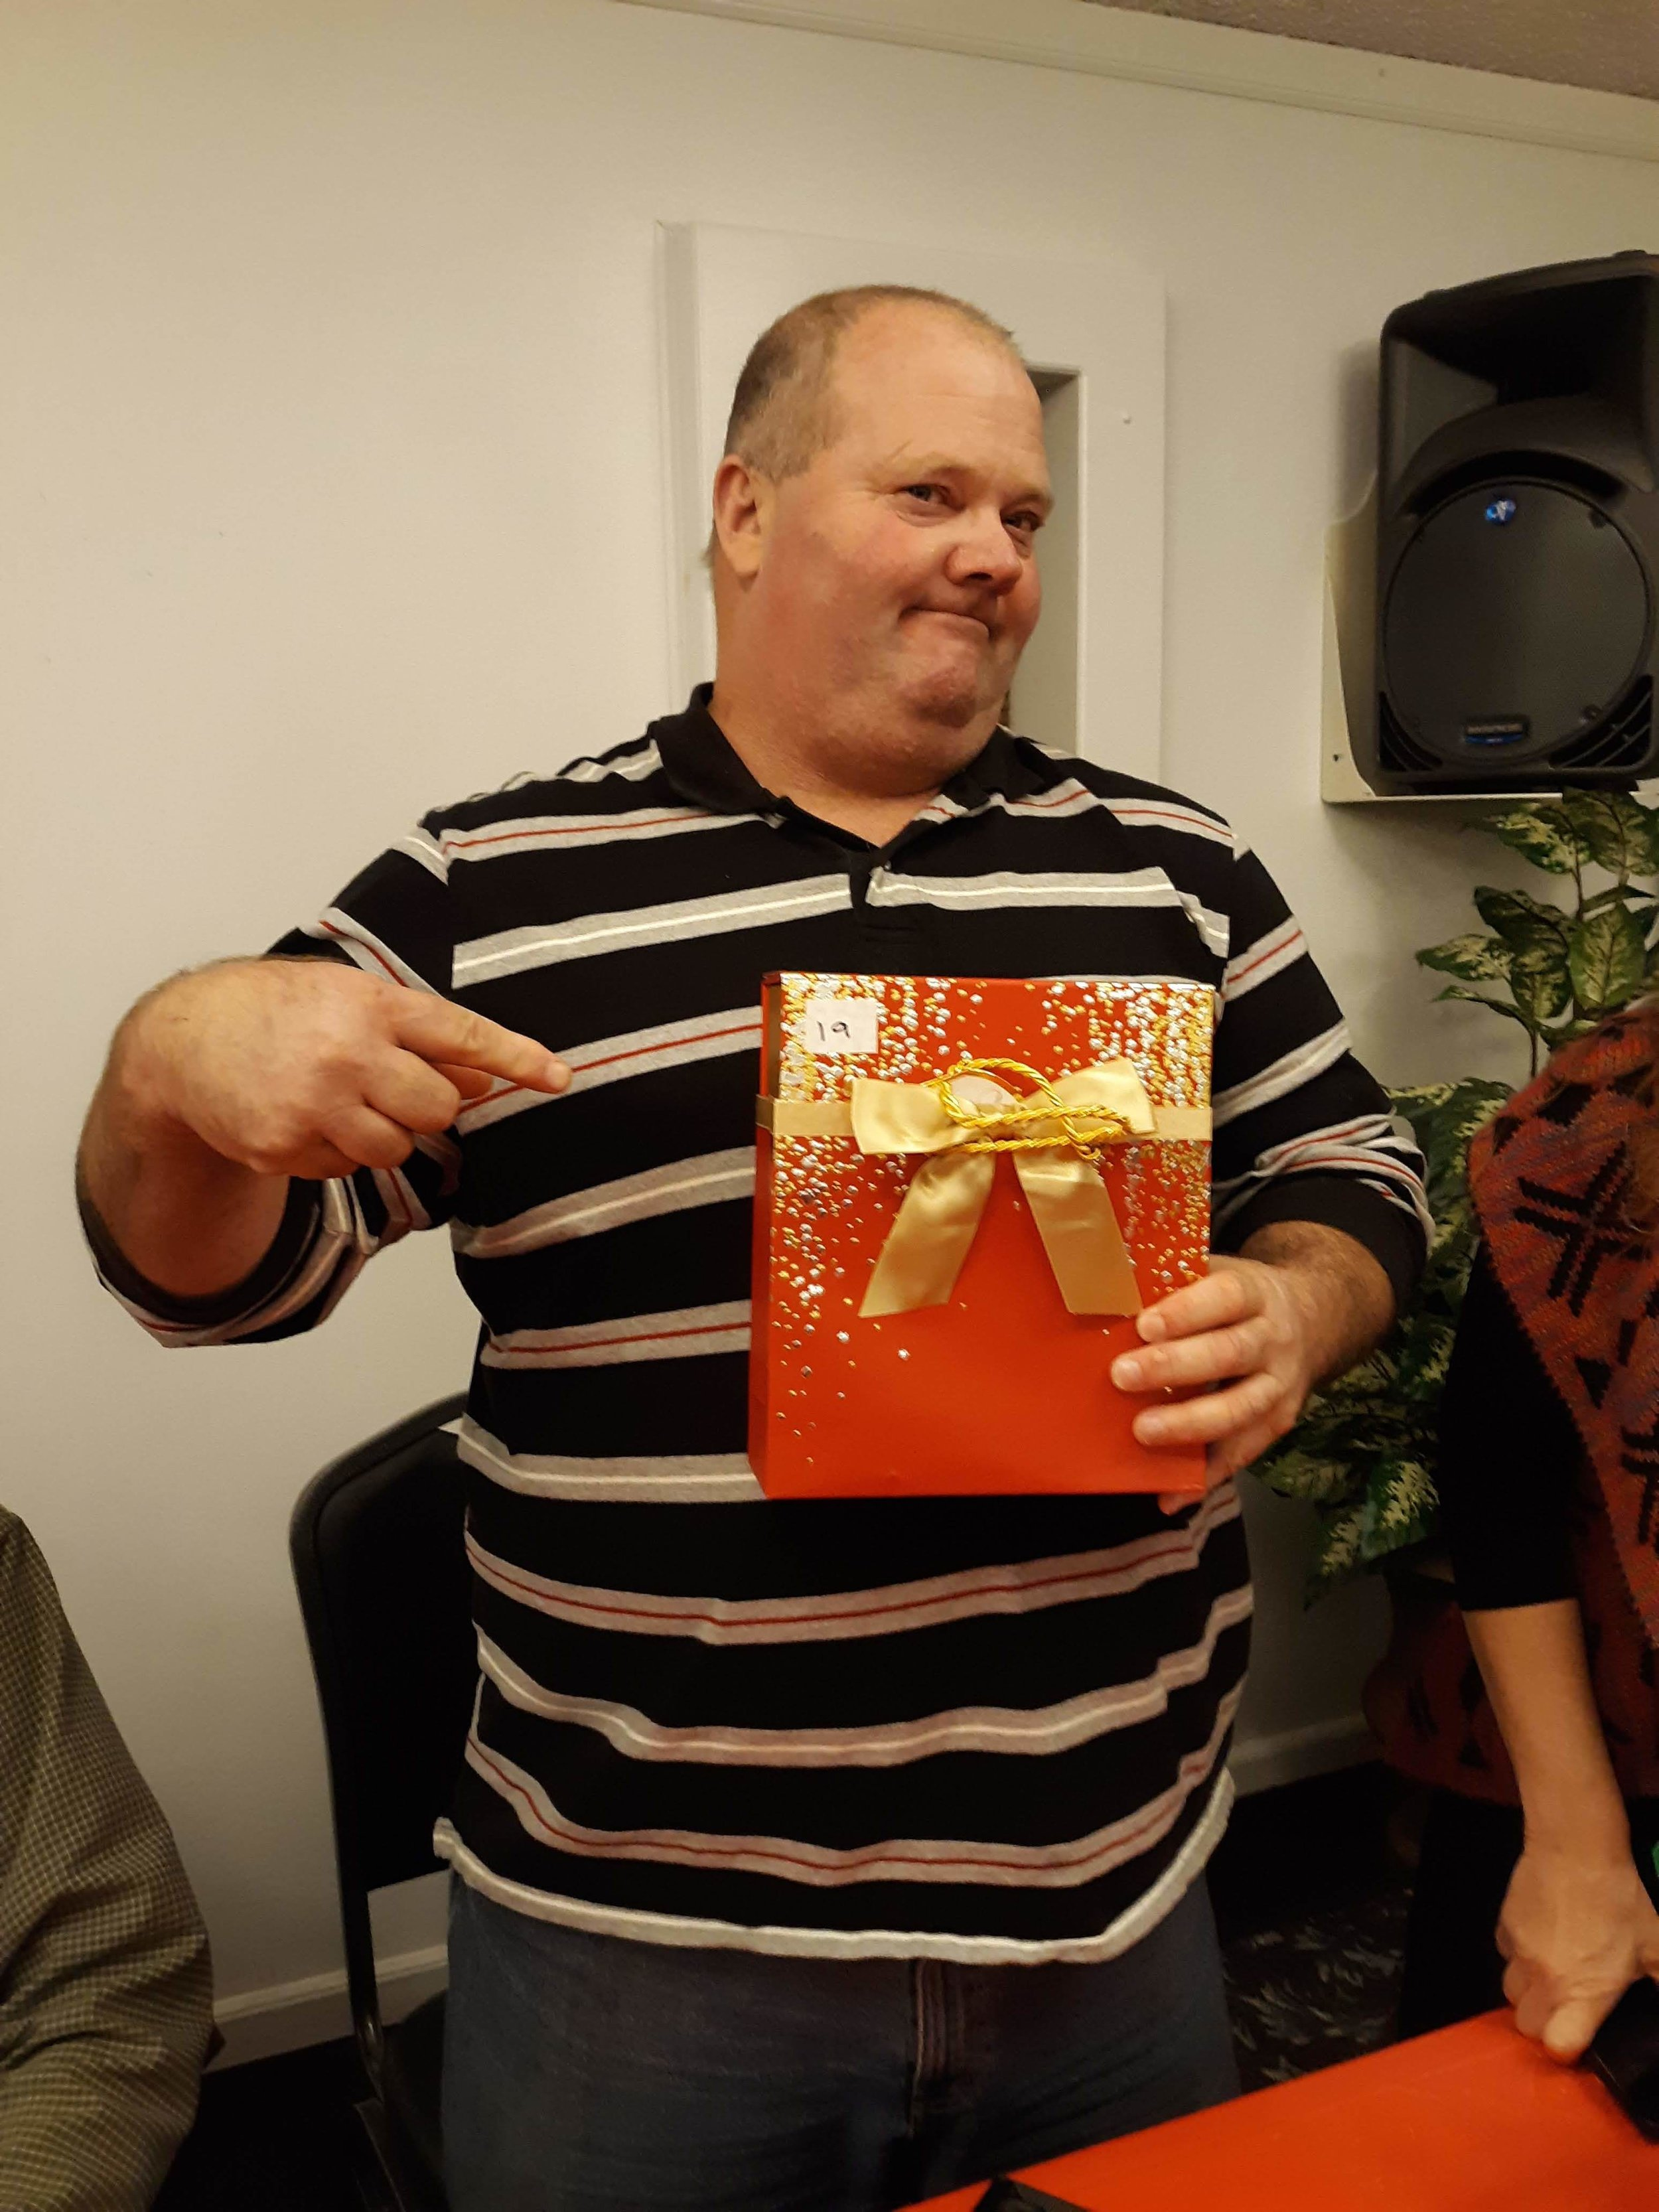 Bro. David received chocolates also. You can tell he is good with that.